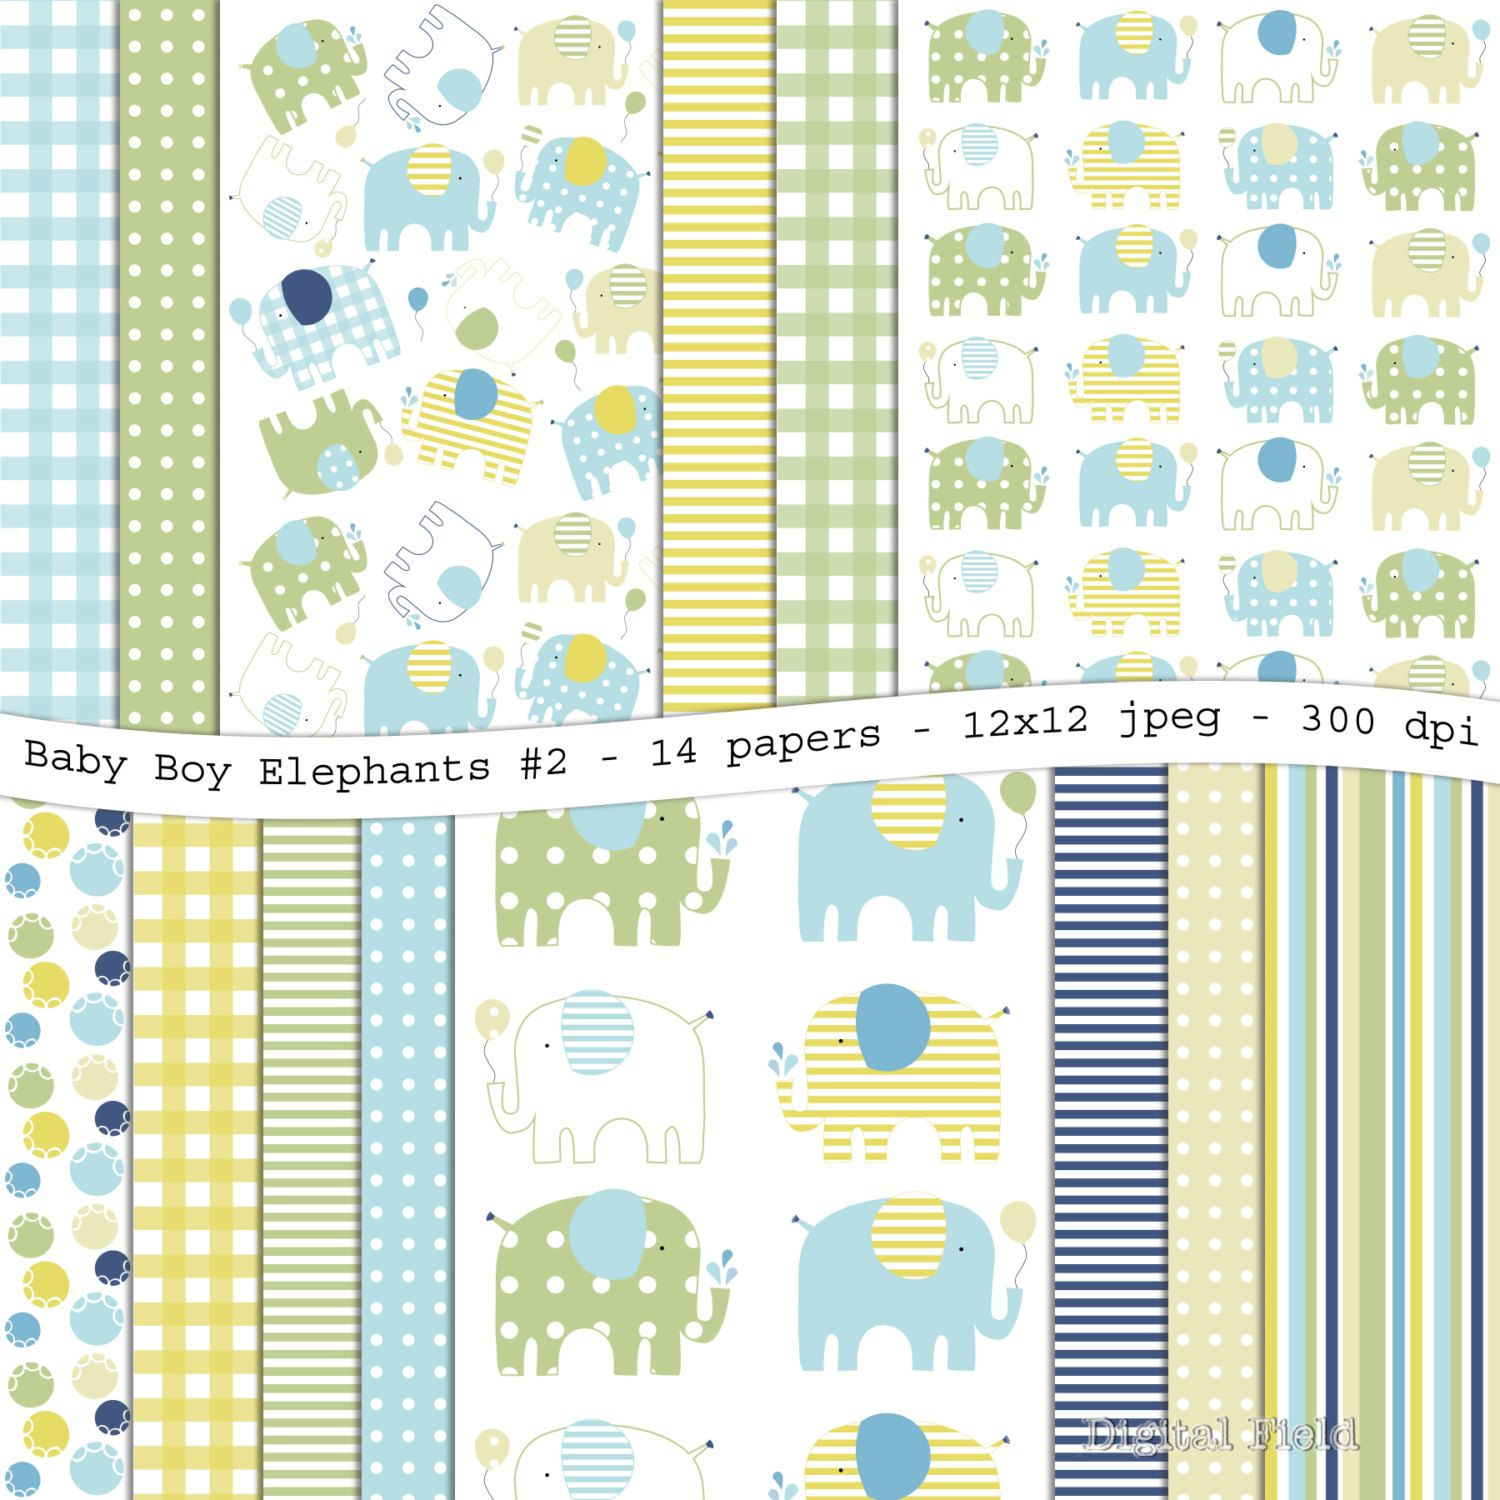 Yw scrapbook paper - Explore Paper Packs Scrapbook Paper And More